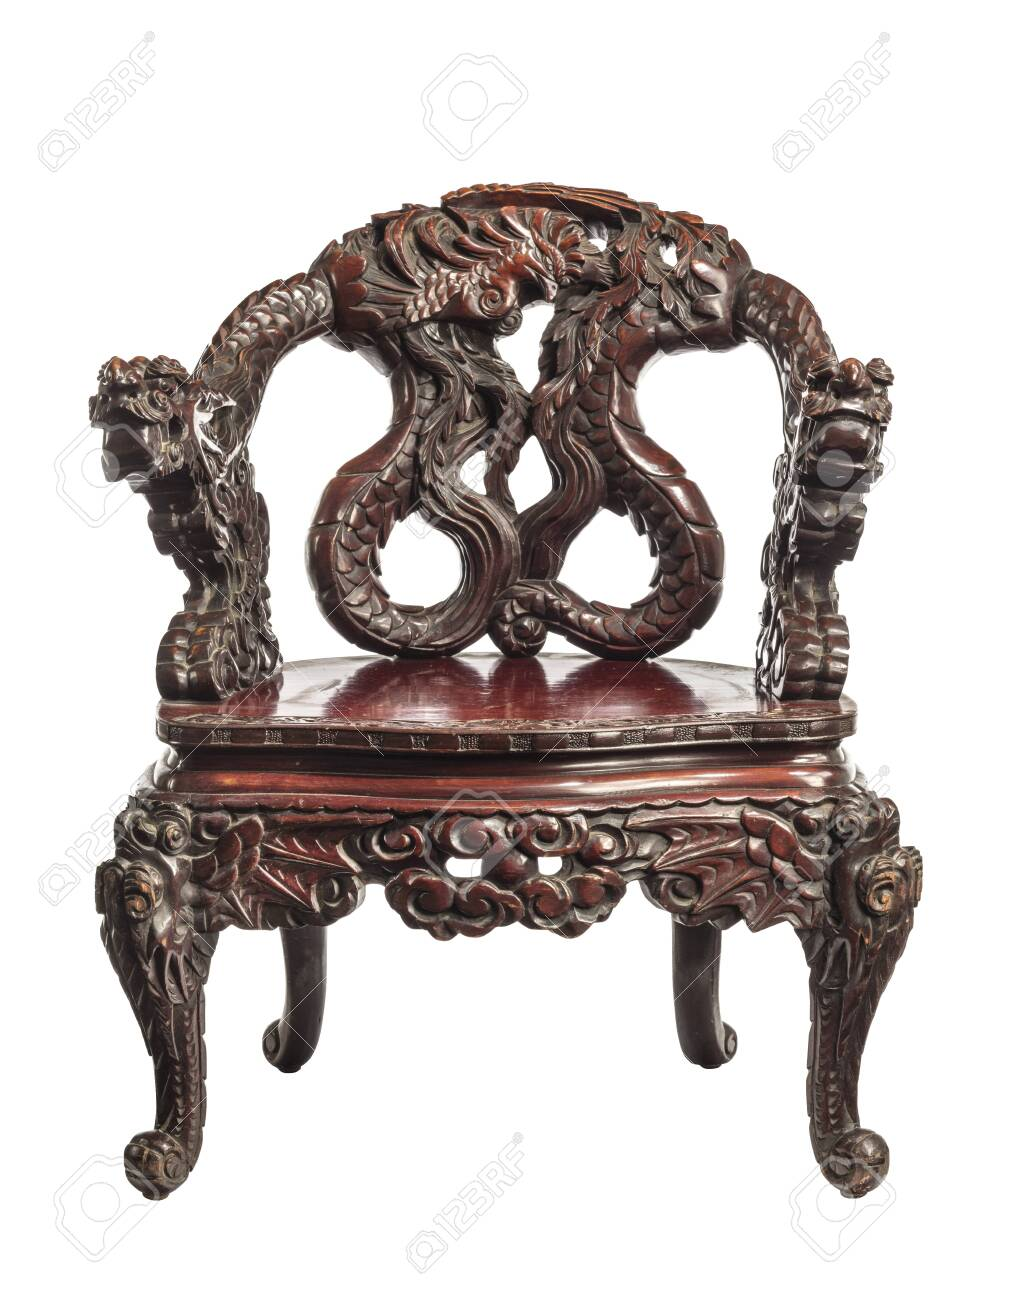 Antique Chinese throne chair with carvings made around 1880. - 137846686